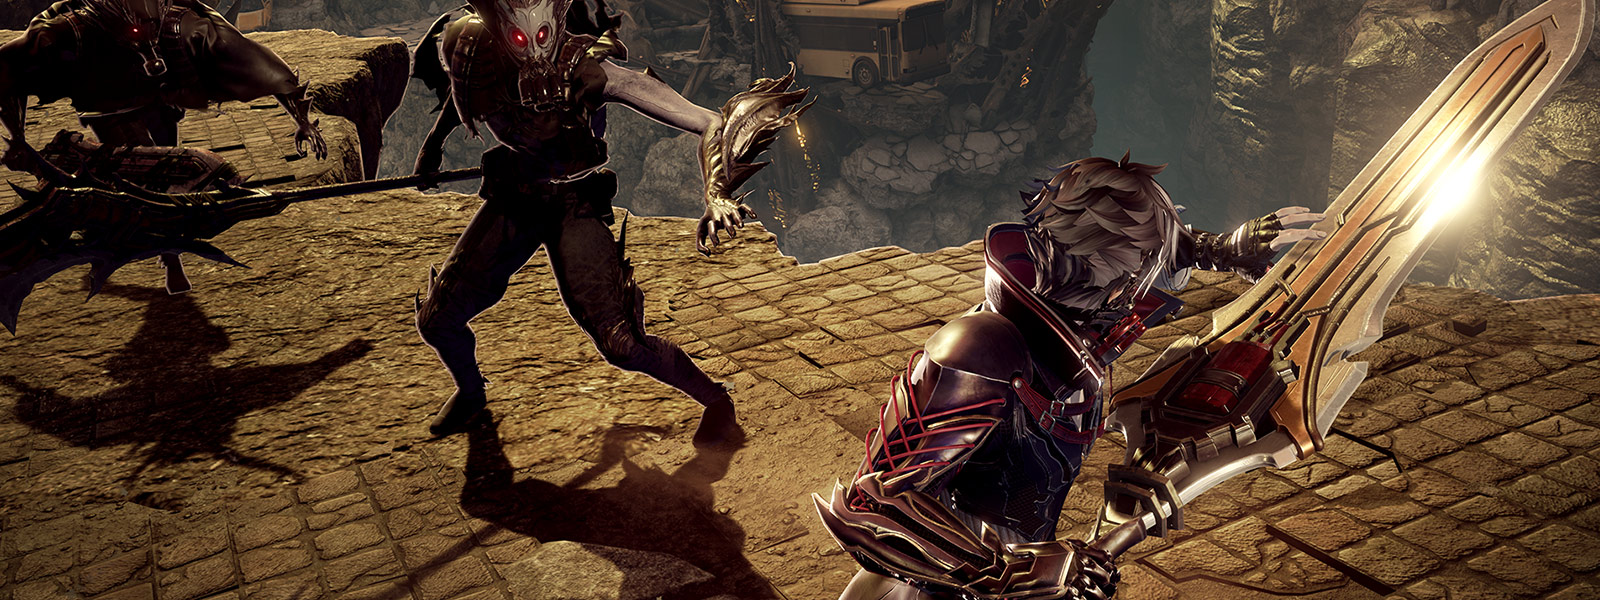 Code Vein character prepares to attack the Lost with a sword